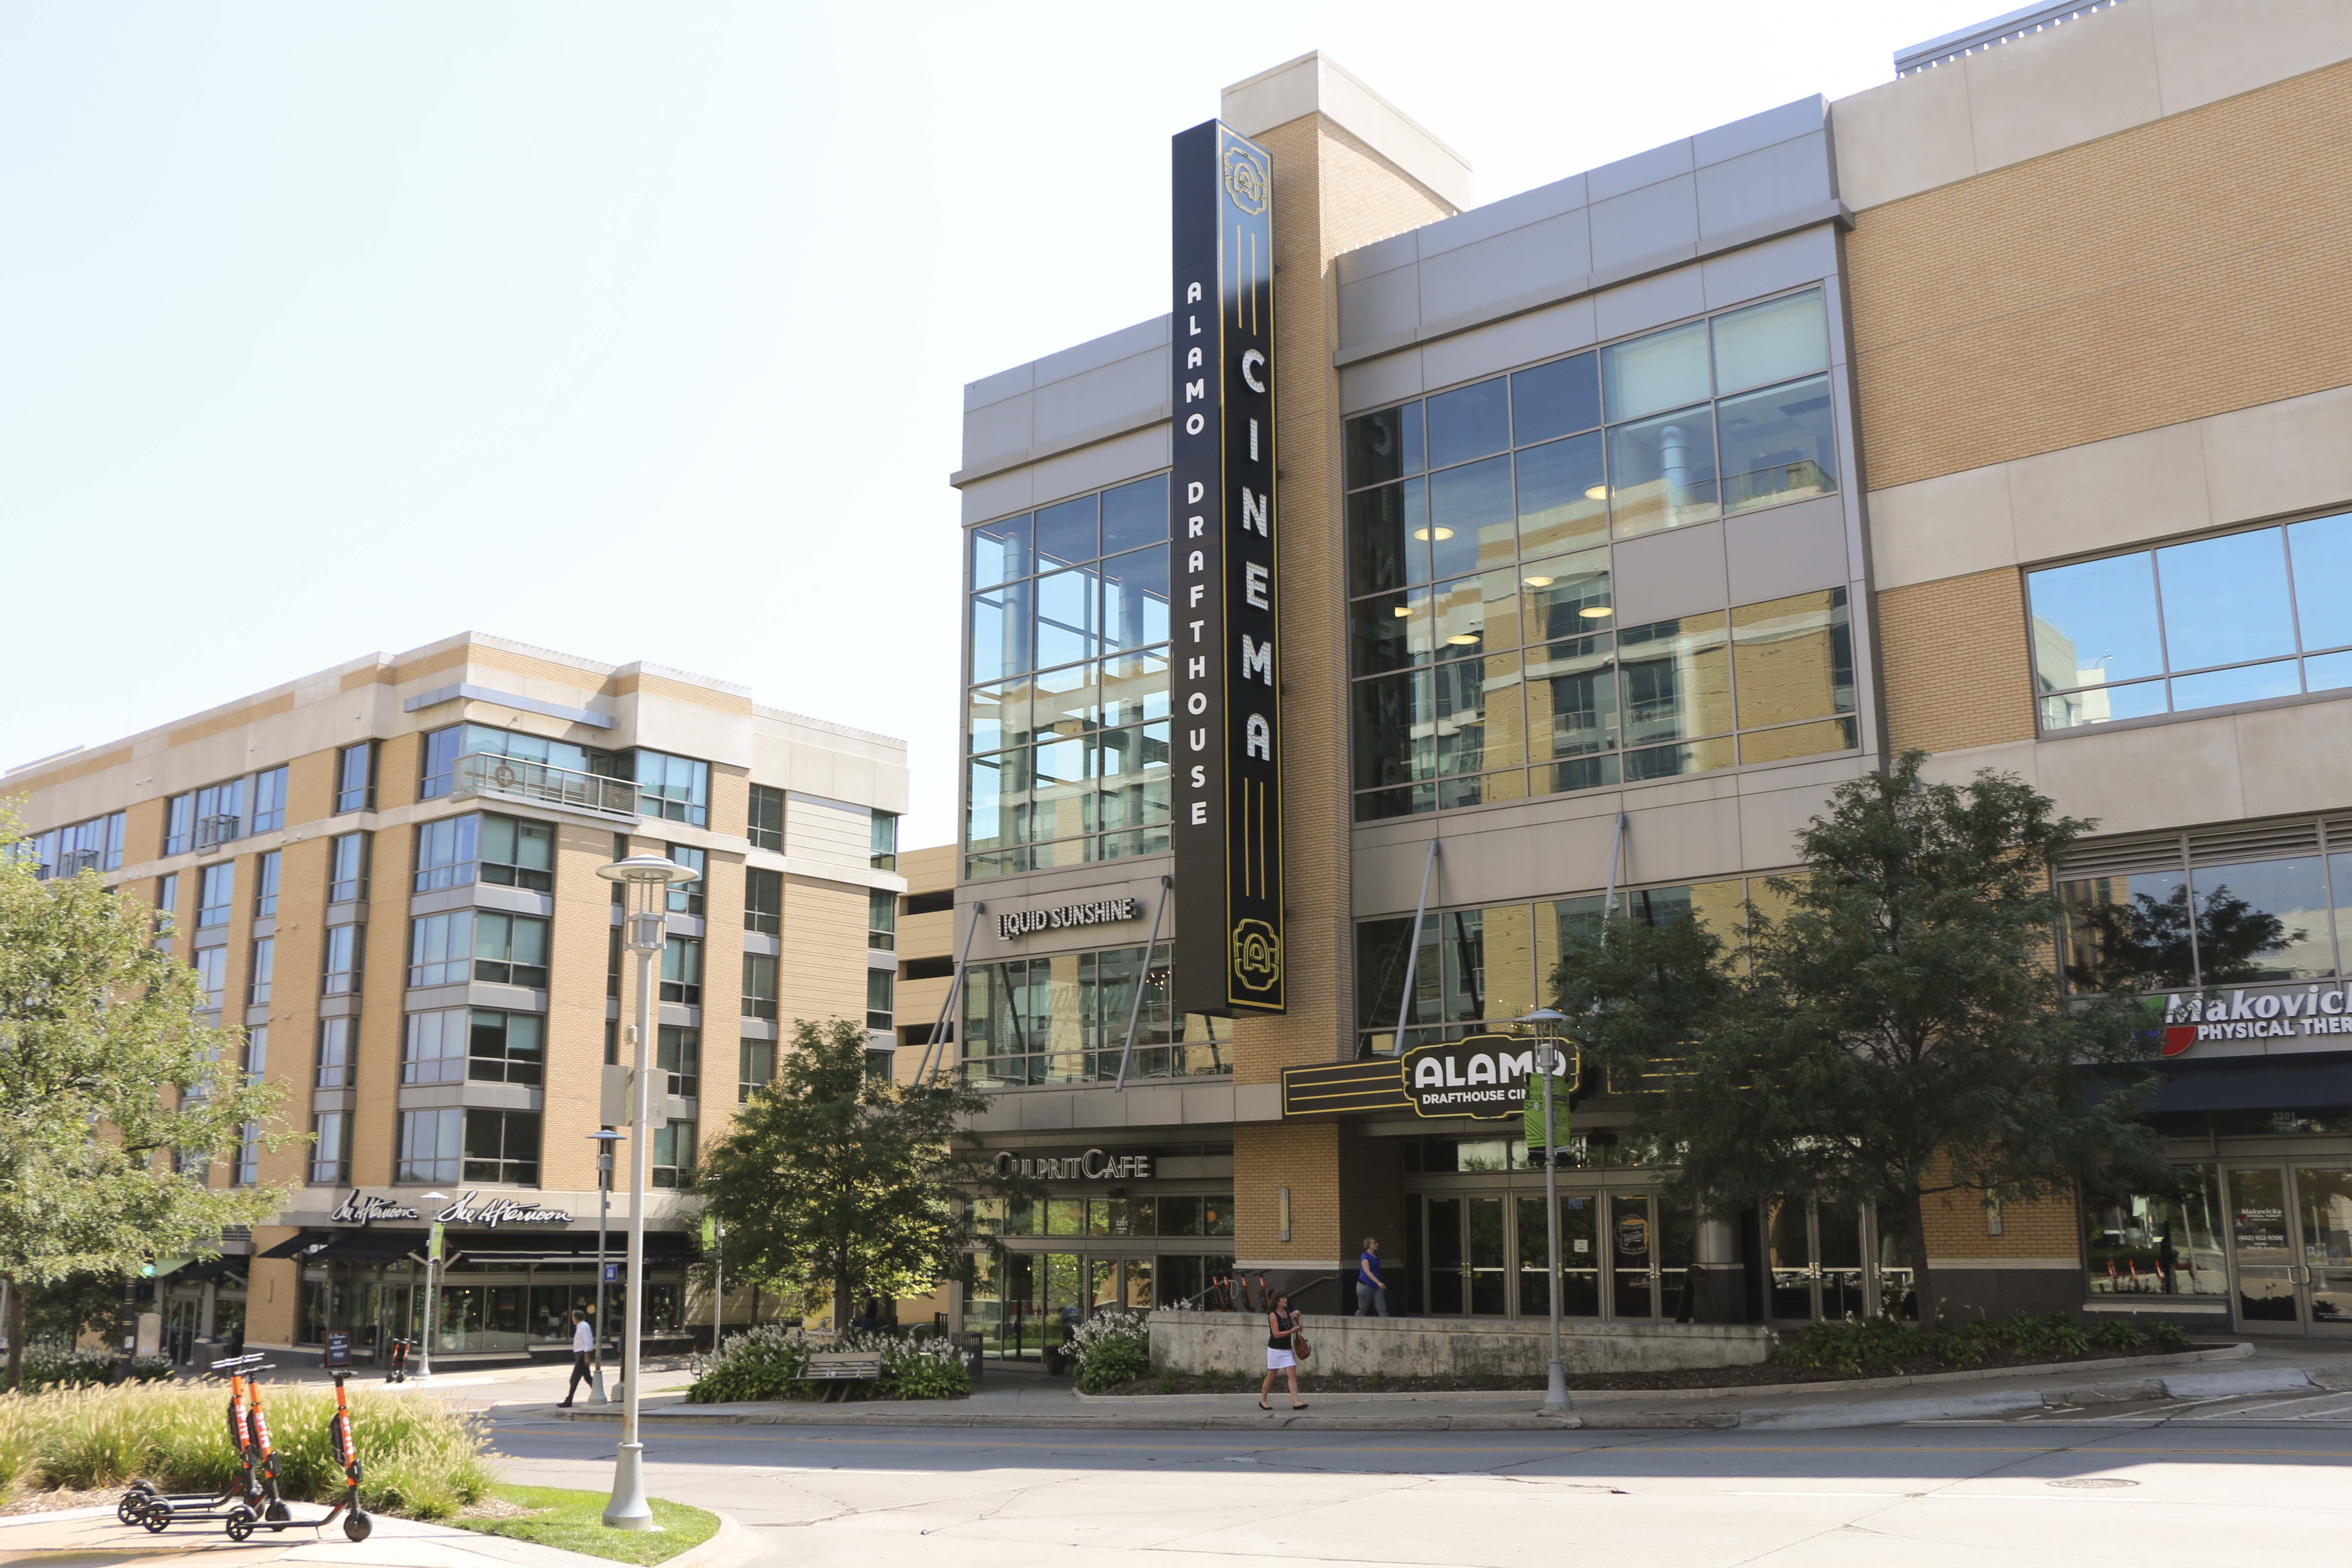 Midtown-Crossing-Apartments-Omaha-NE-68131-nearby attraction- Cinema